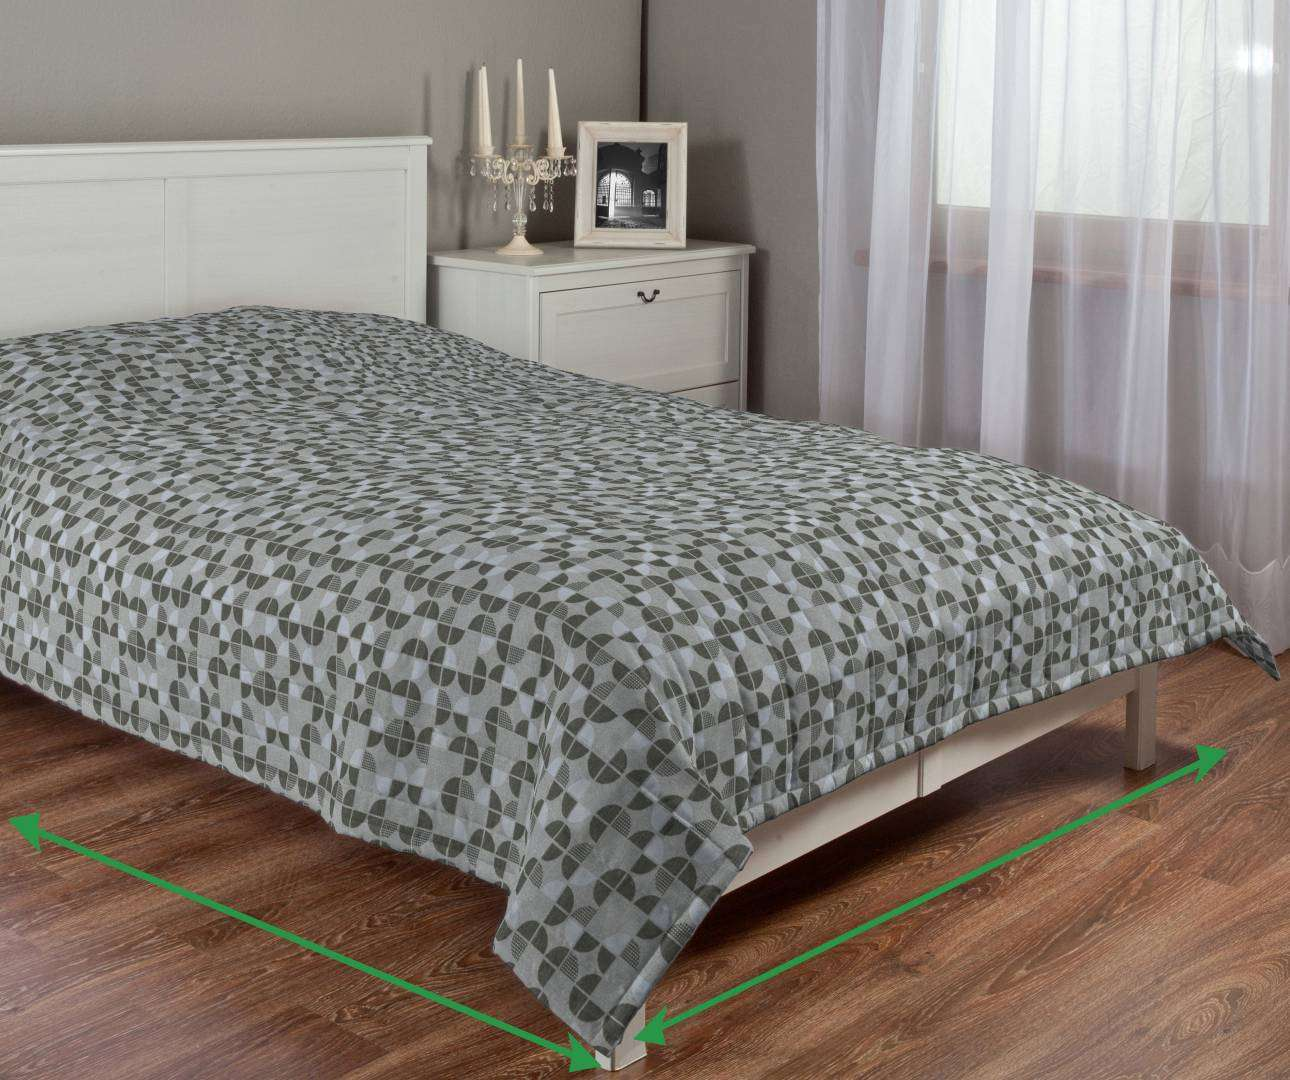 Quilted throw (vertical quilt pattern) in collection SALE, fabric: 138-20